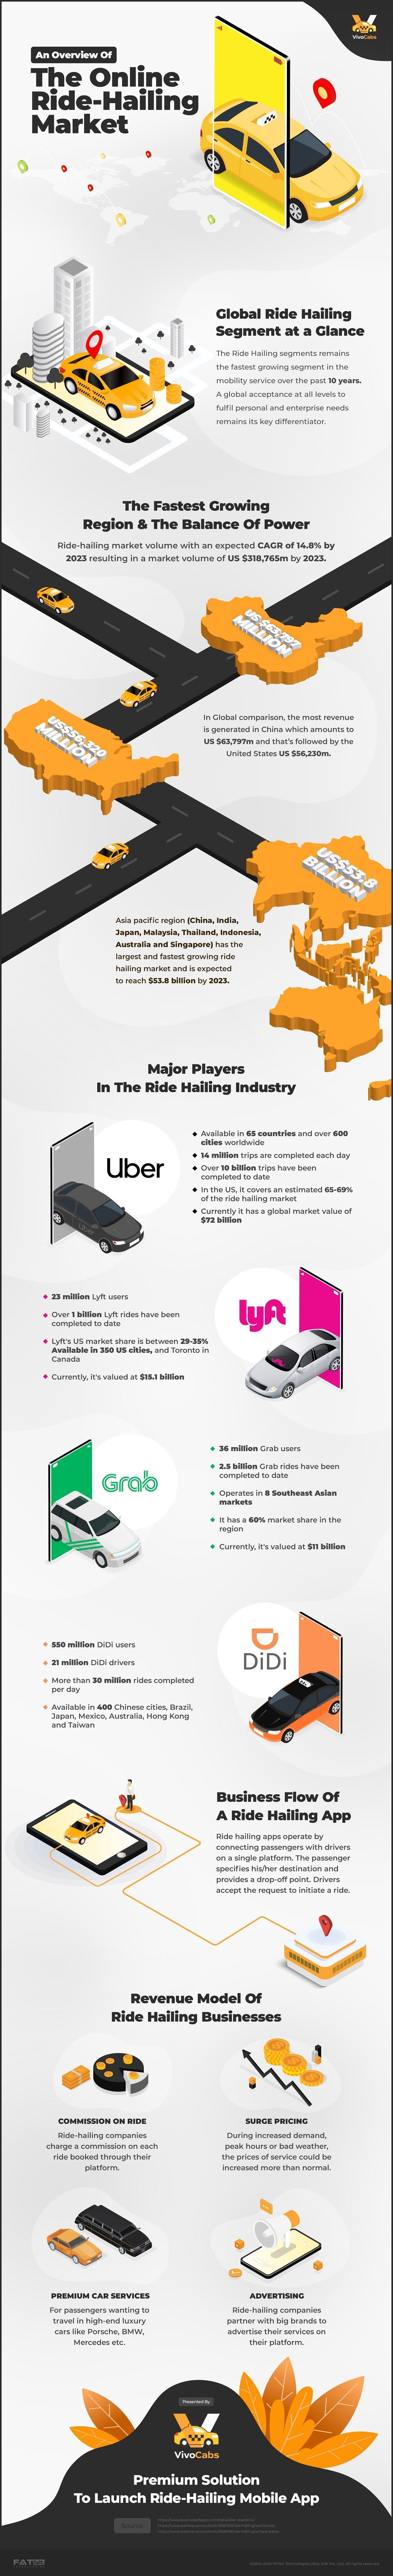 Current State of the Ride-Hailing Market & Business Opportunities #infographic